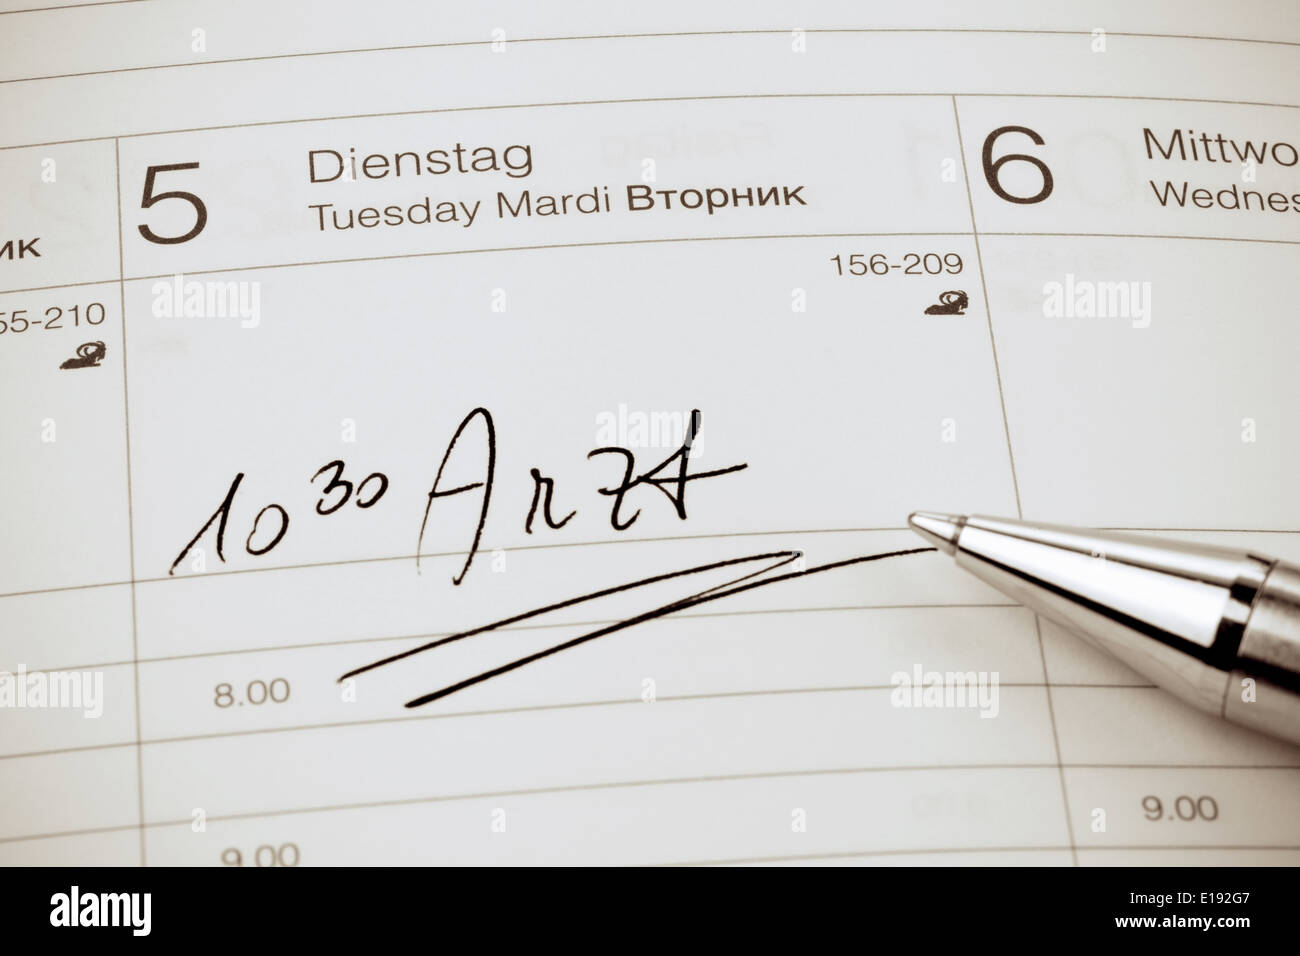 Doctors Fee Stock Photos & Doctors Fee Stock Images - Alamy